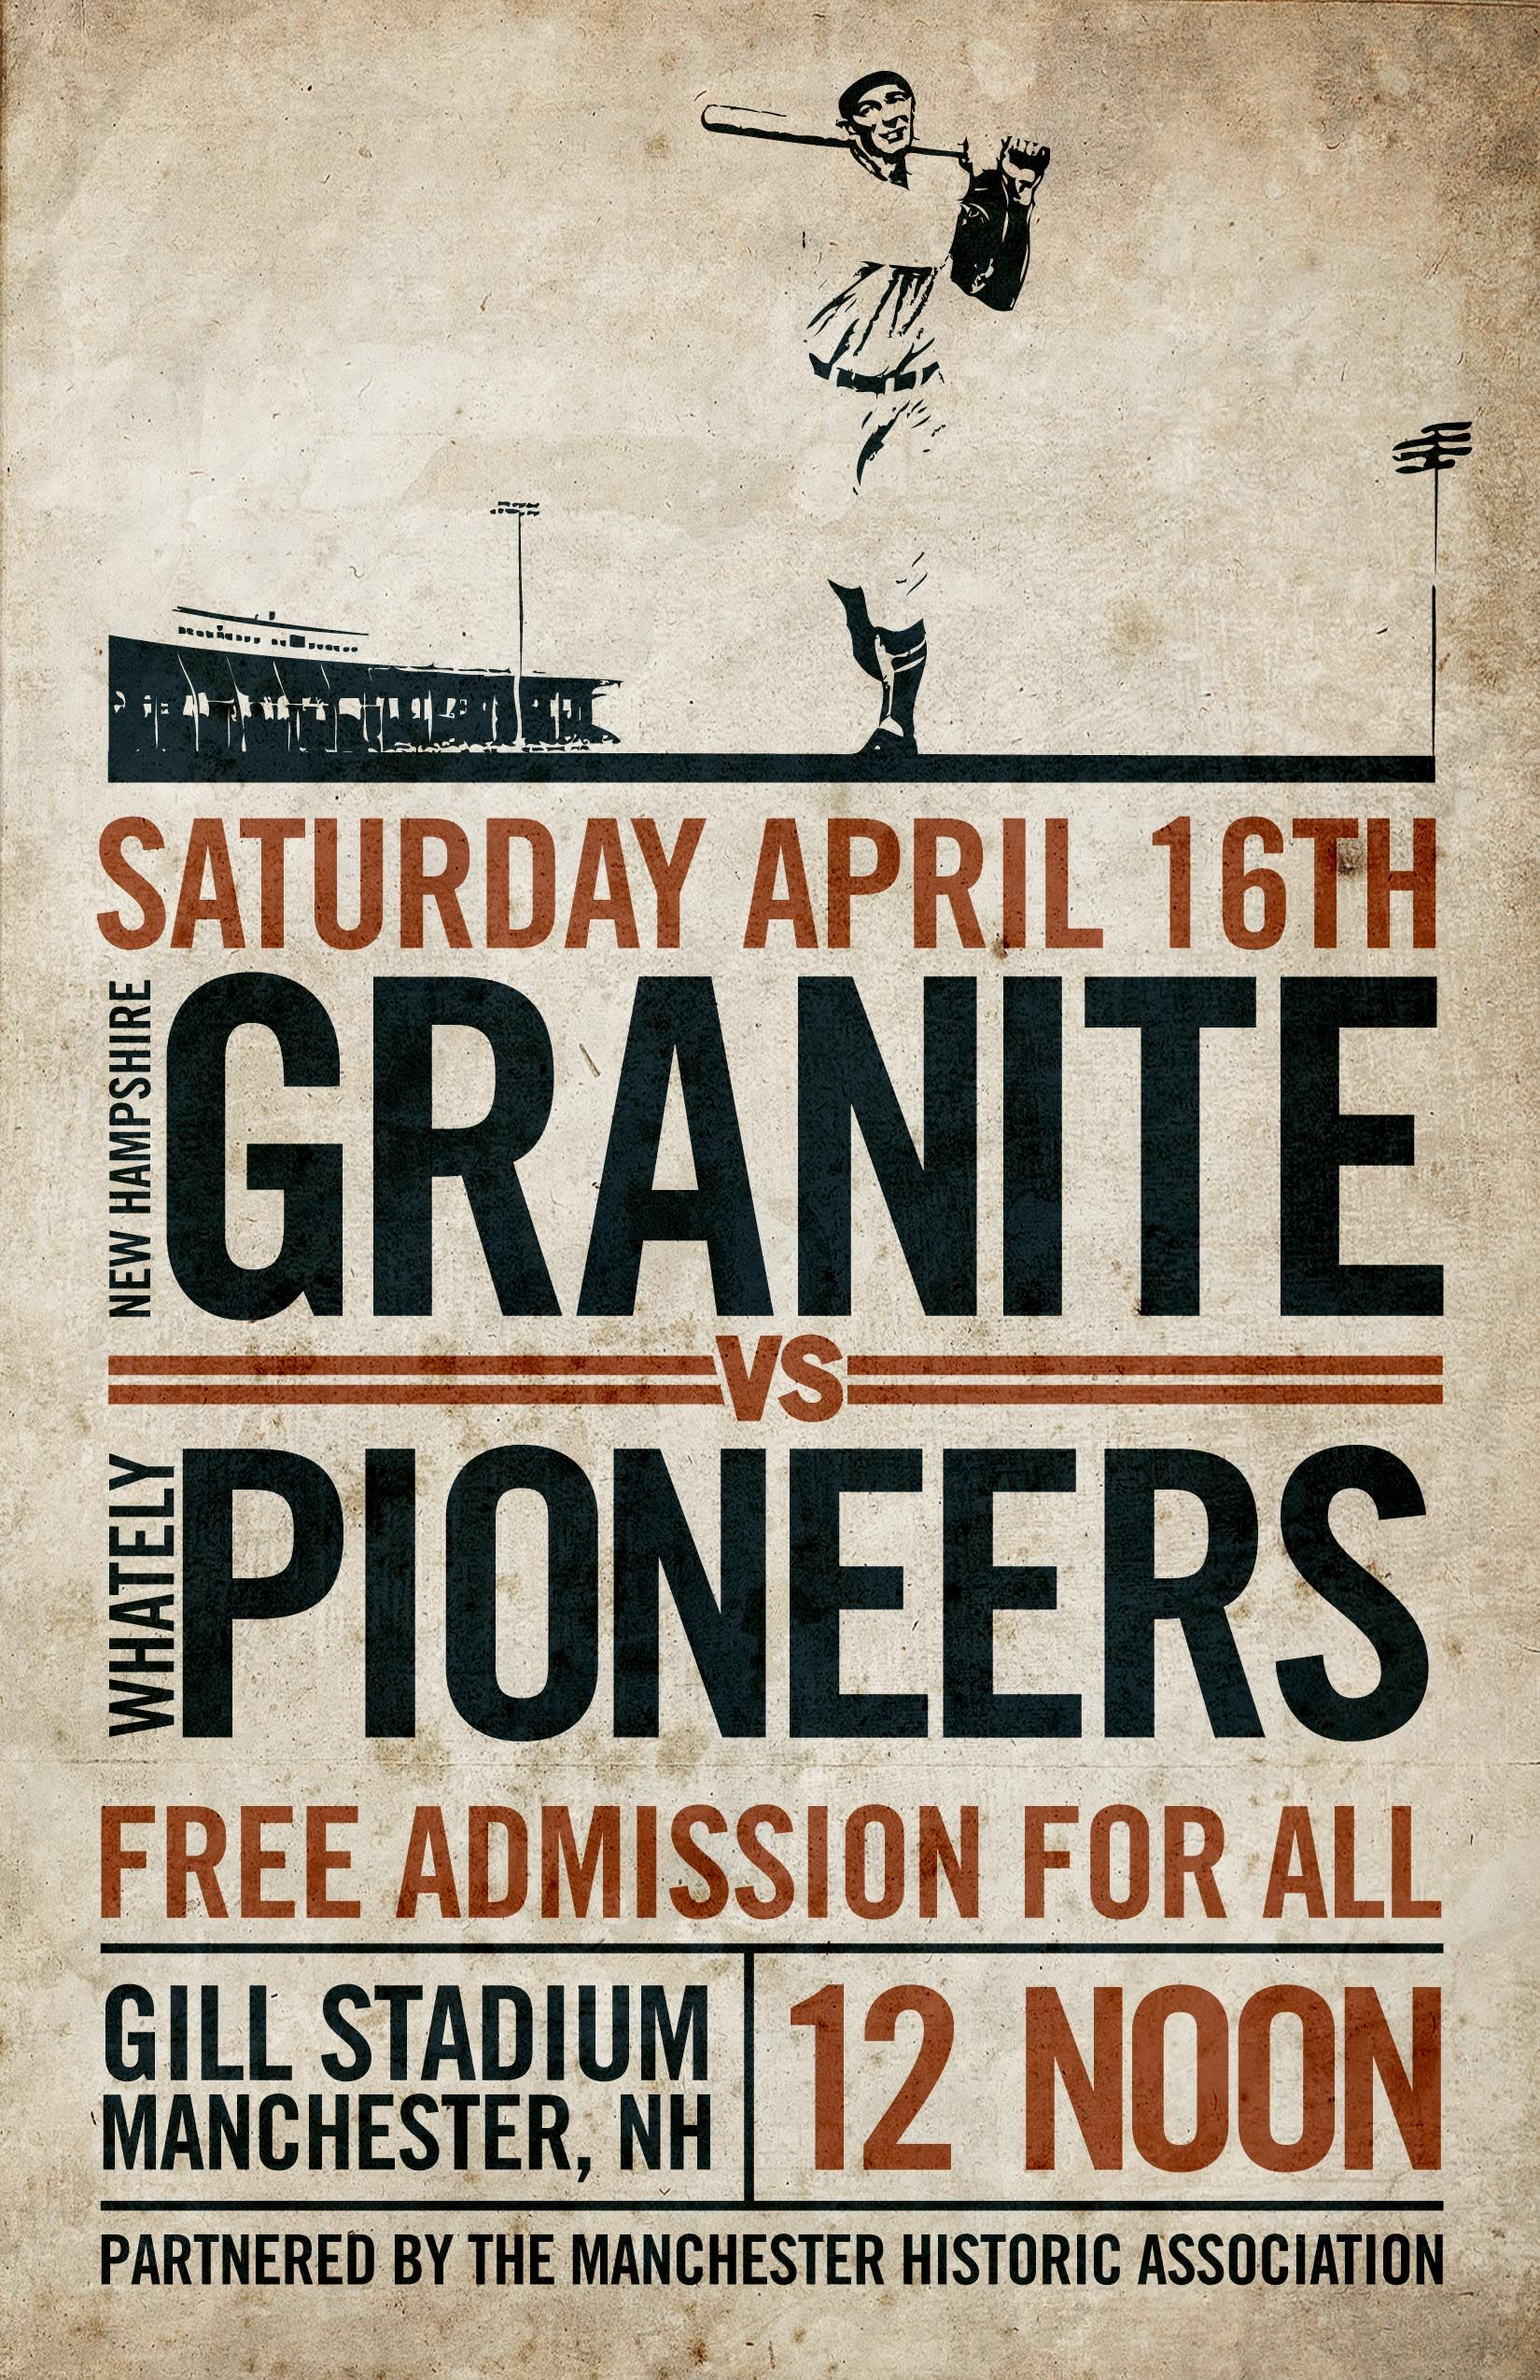 vintage baseball invite free admission for all clearly not an